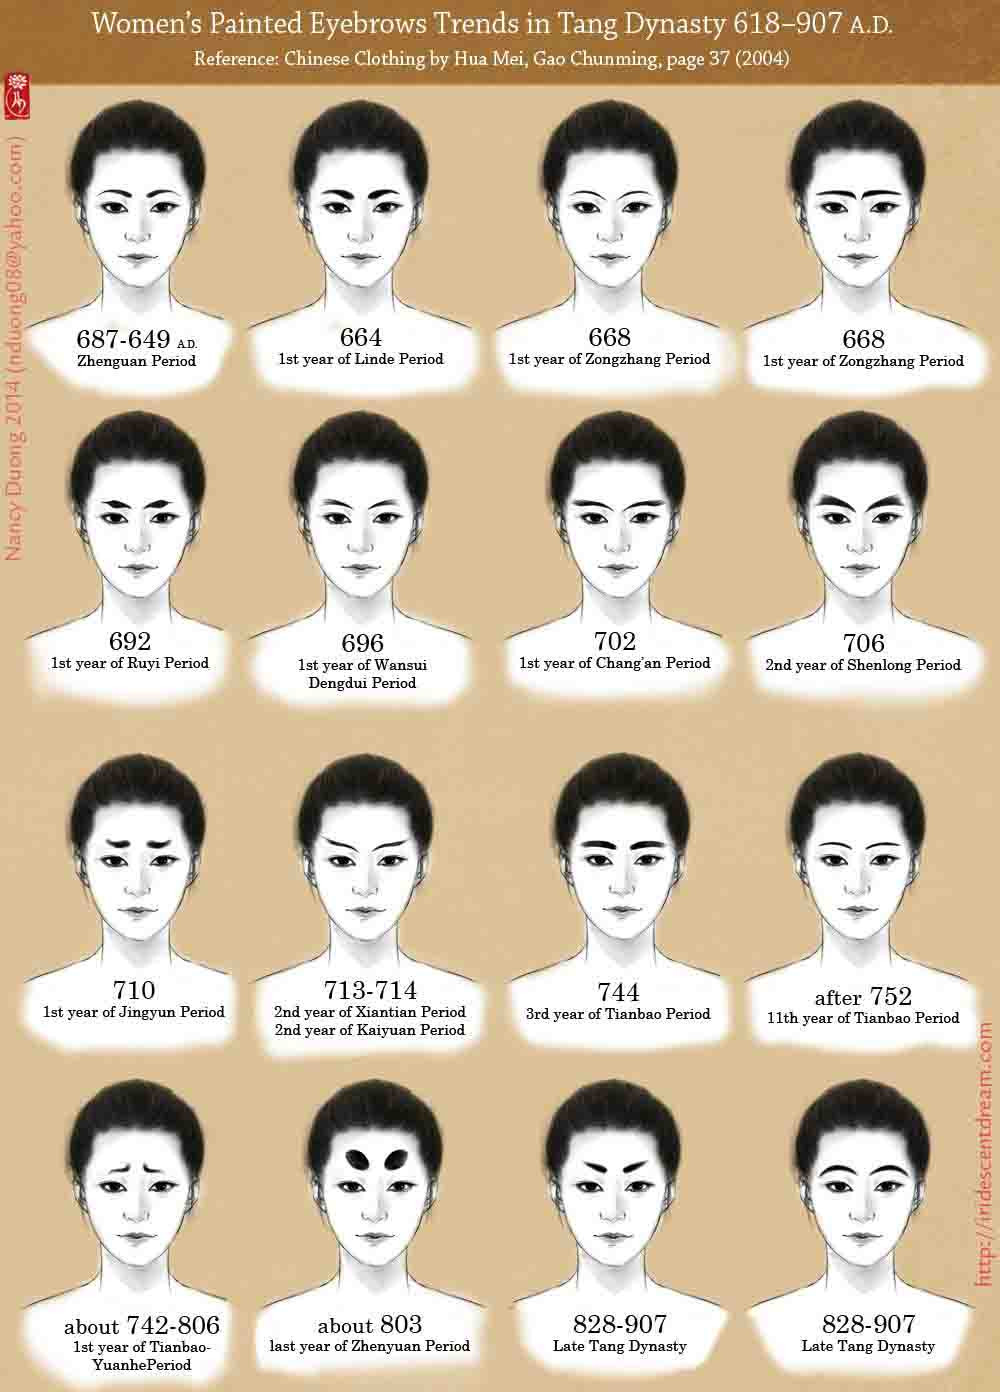 Edu-Pal China: Women's Painted Eyebrows Trends in Tang Dynasty